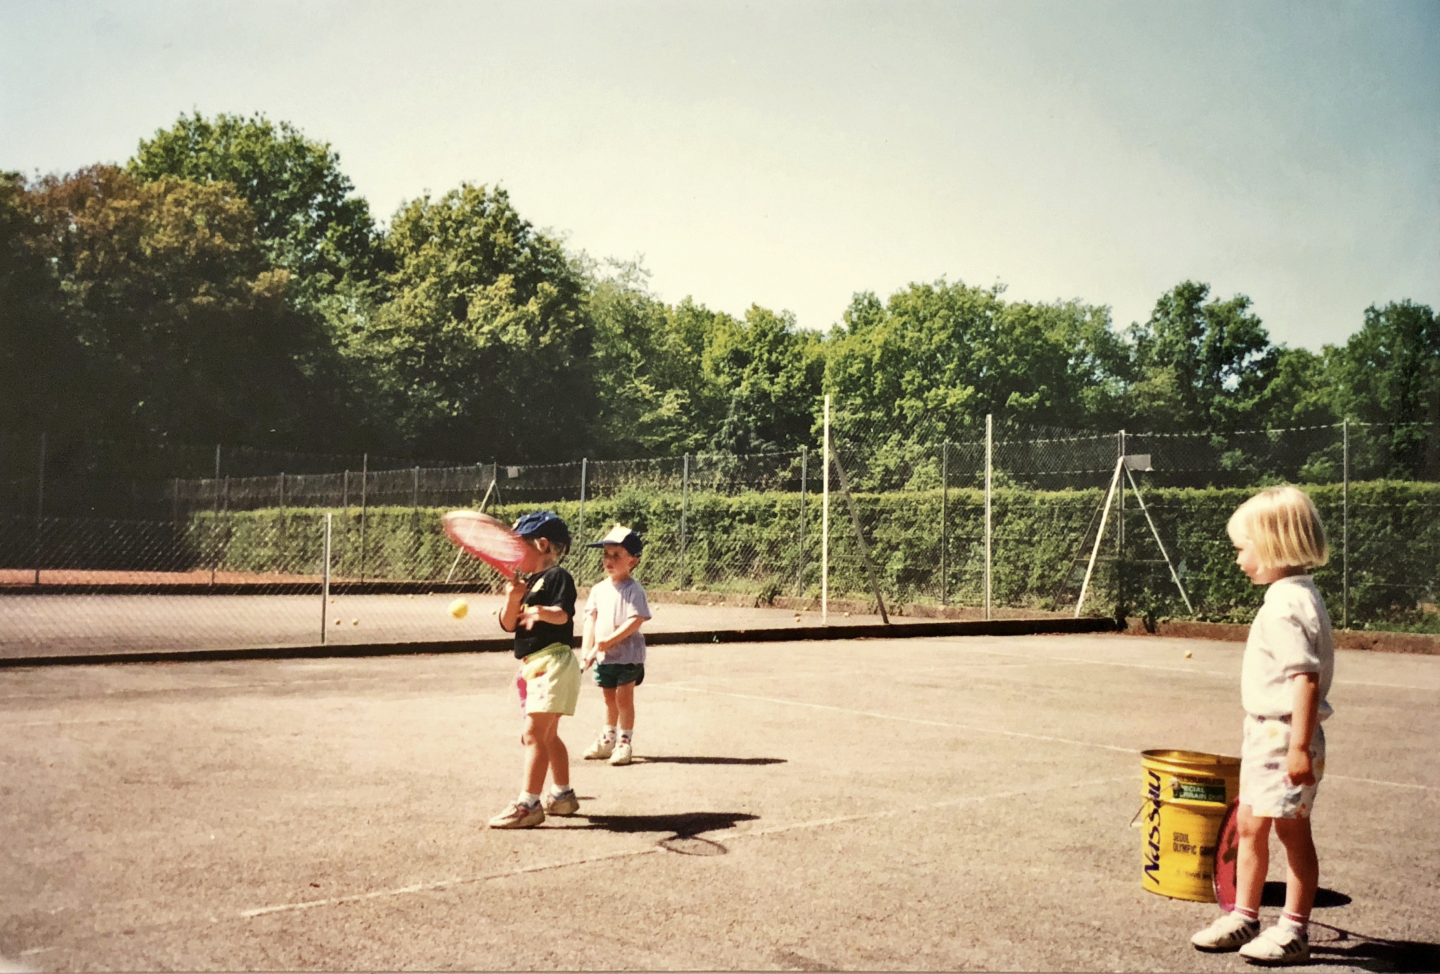 Children playing tennis outside, young, children, tennis, sports, active, GamePlan A